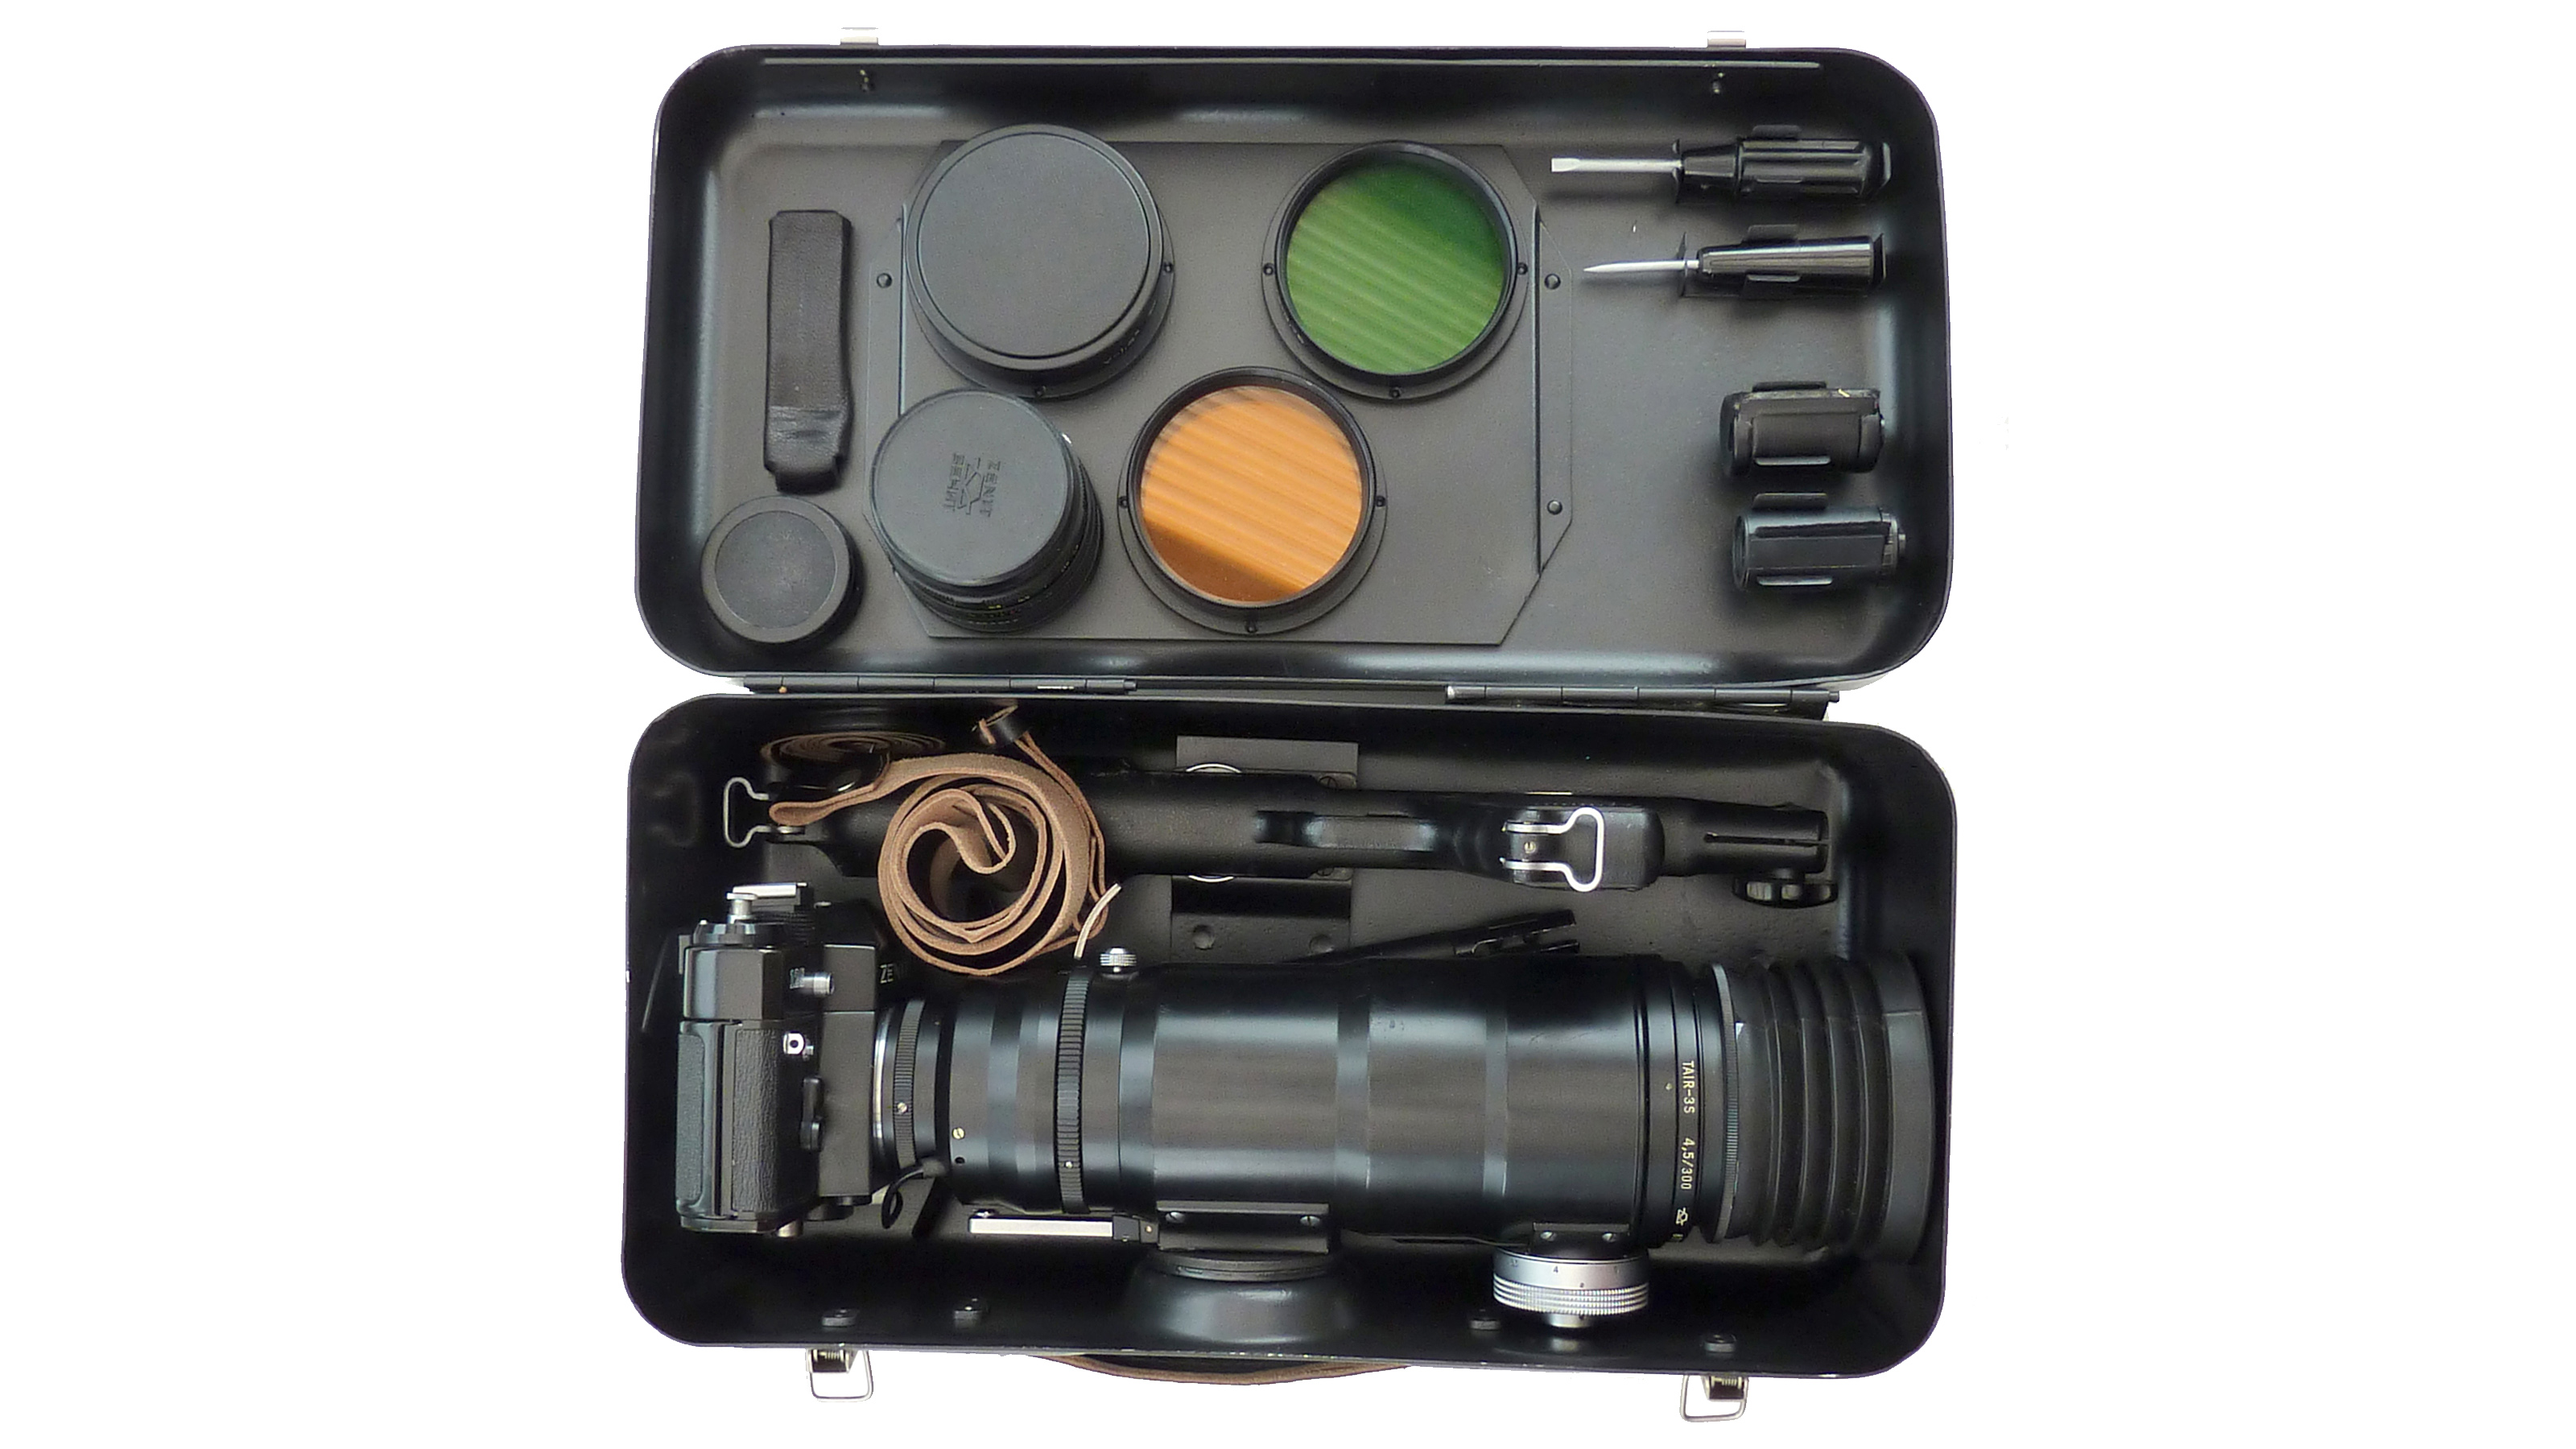 The Zenit Fotosniper camera packed into its carry case